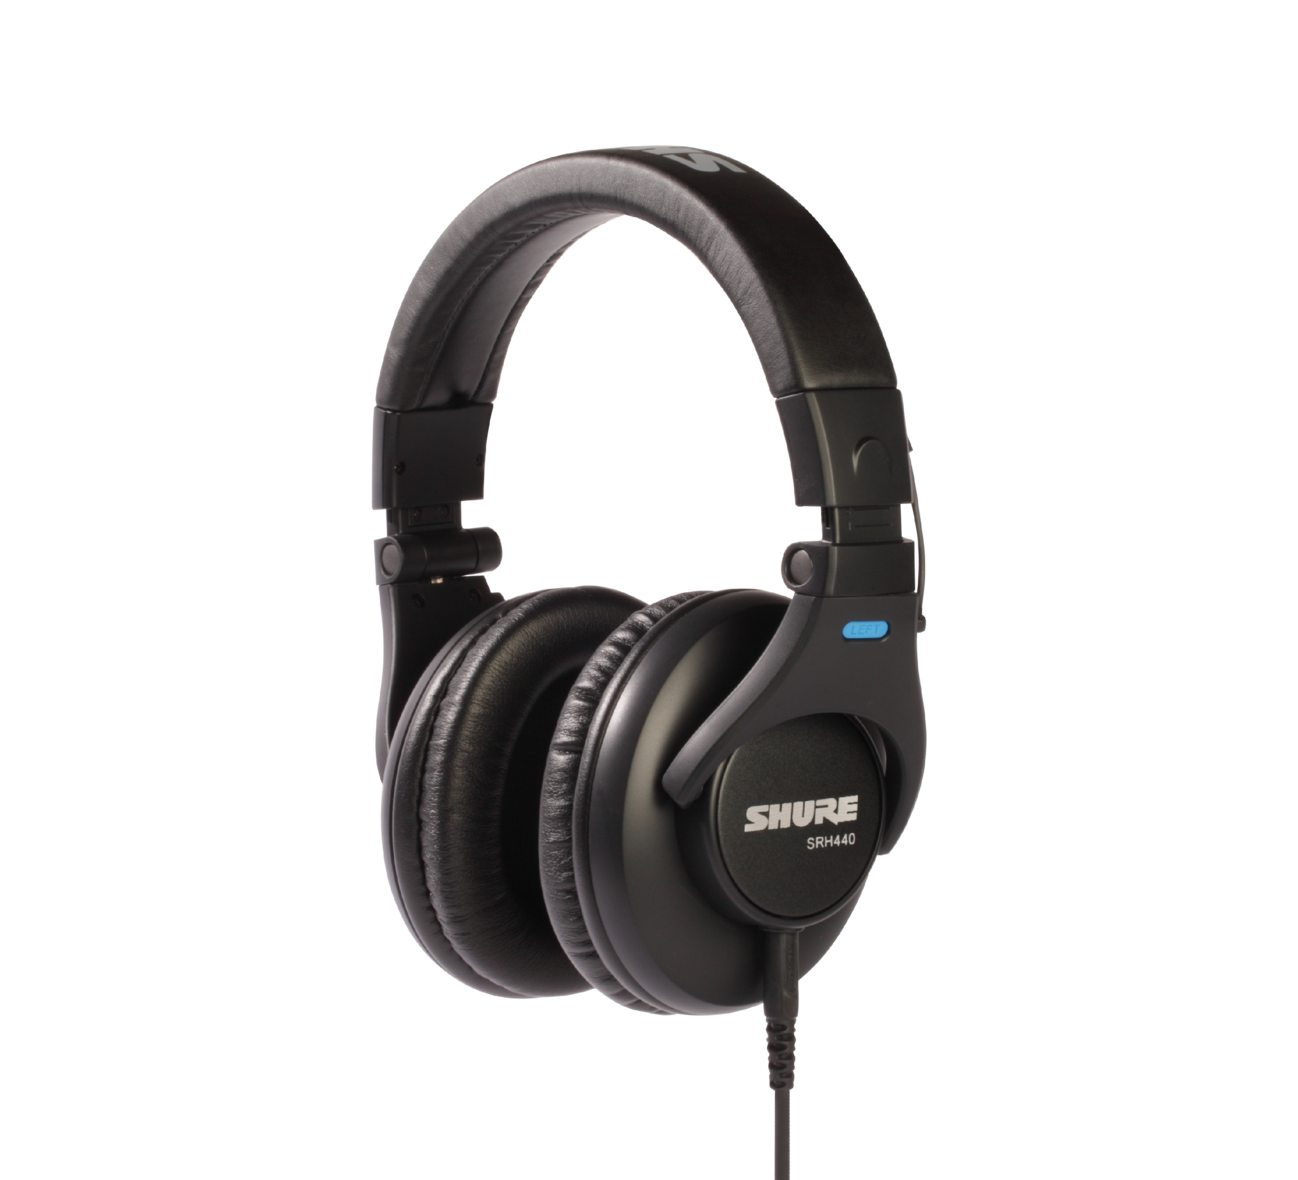 64c0c4ab759 Product Details. The SRH440 Professional Studio Headphones from Shure ...